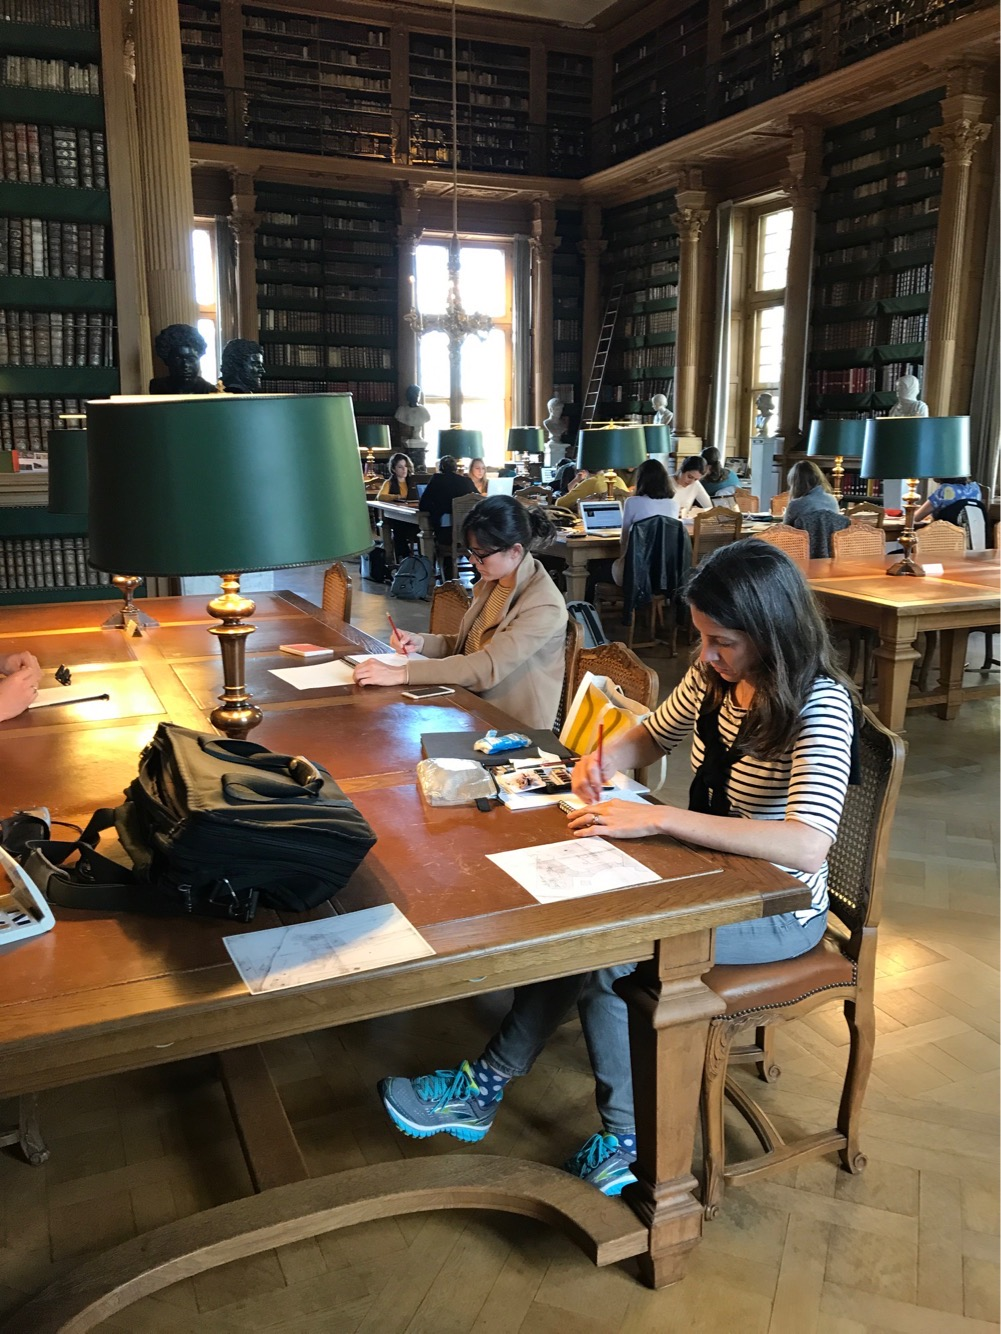 Drawing & watercolor at Bibliothèque Mazarine